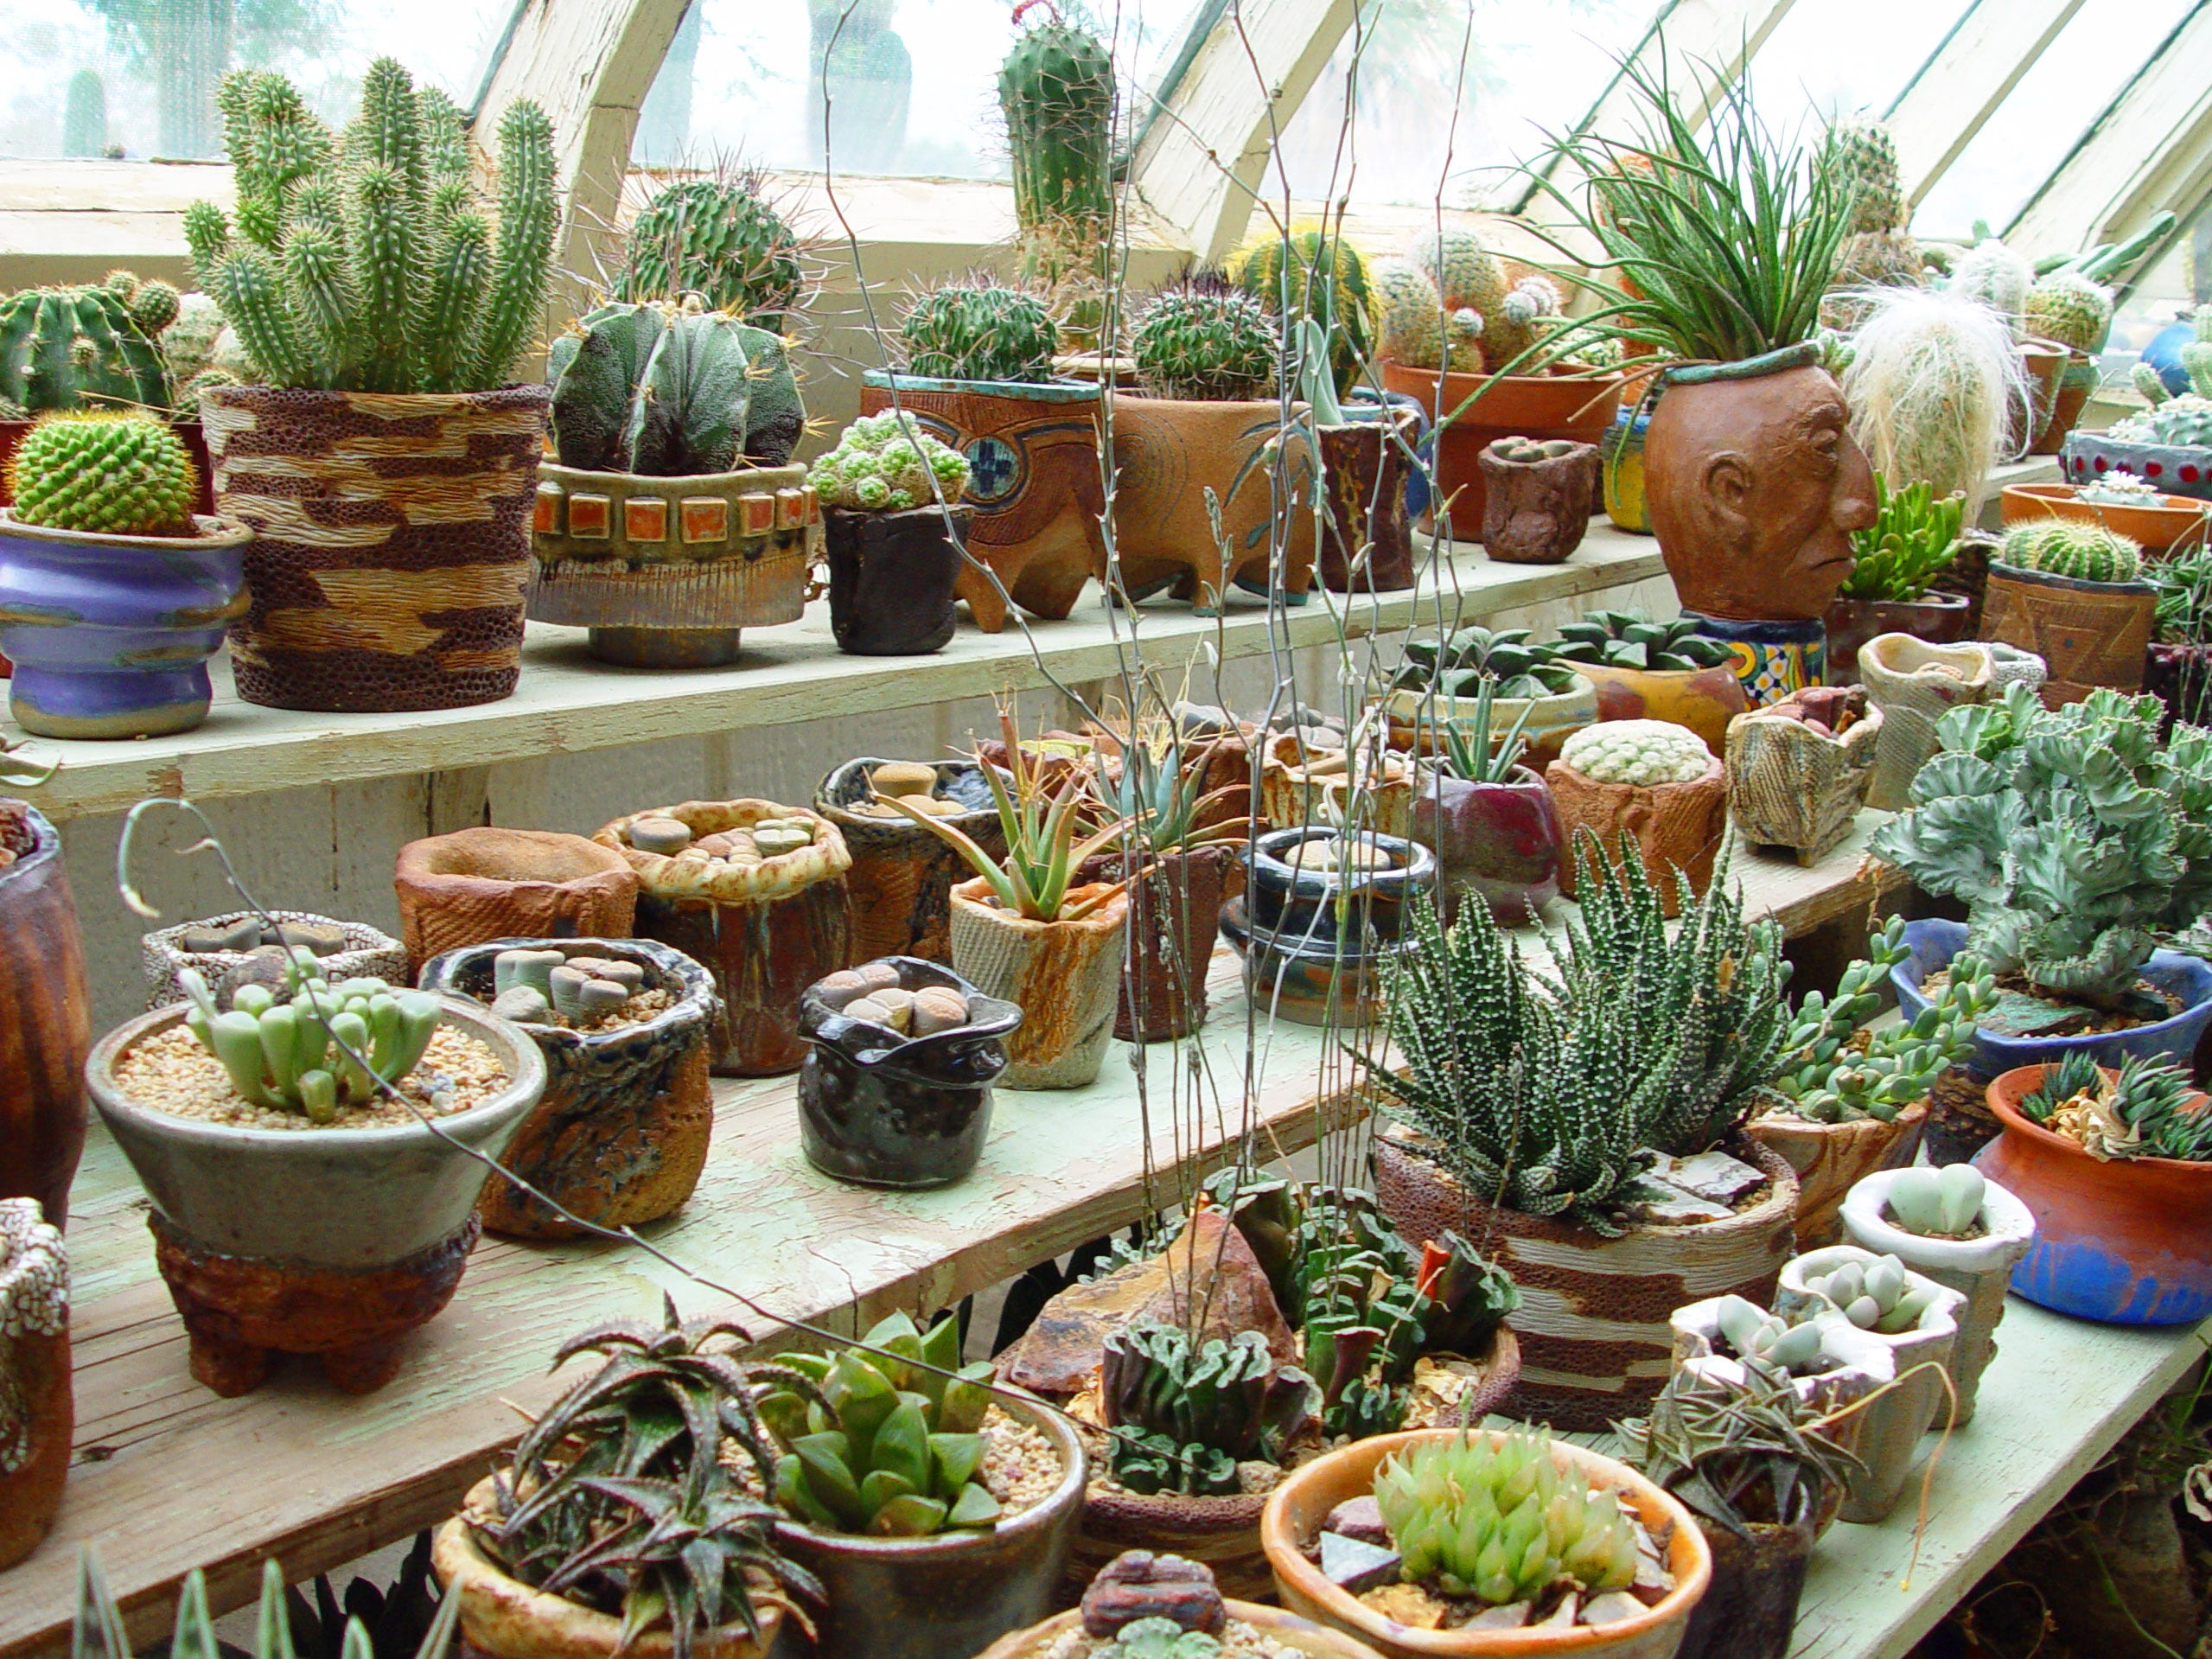 A collection of living sculptures in my Morongo dry greenhouse took many years to create.